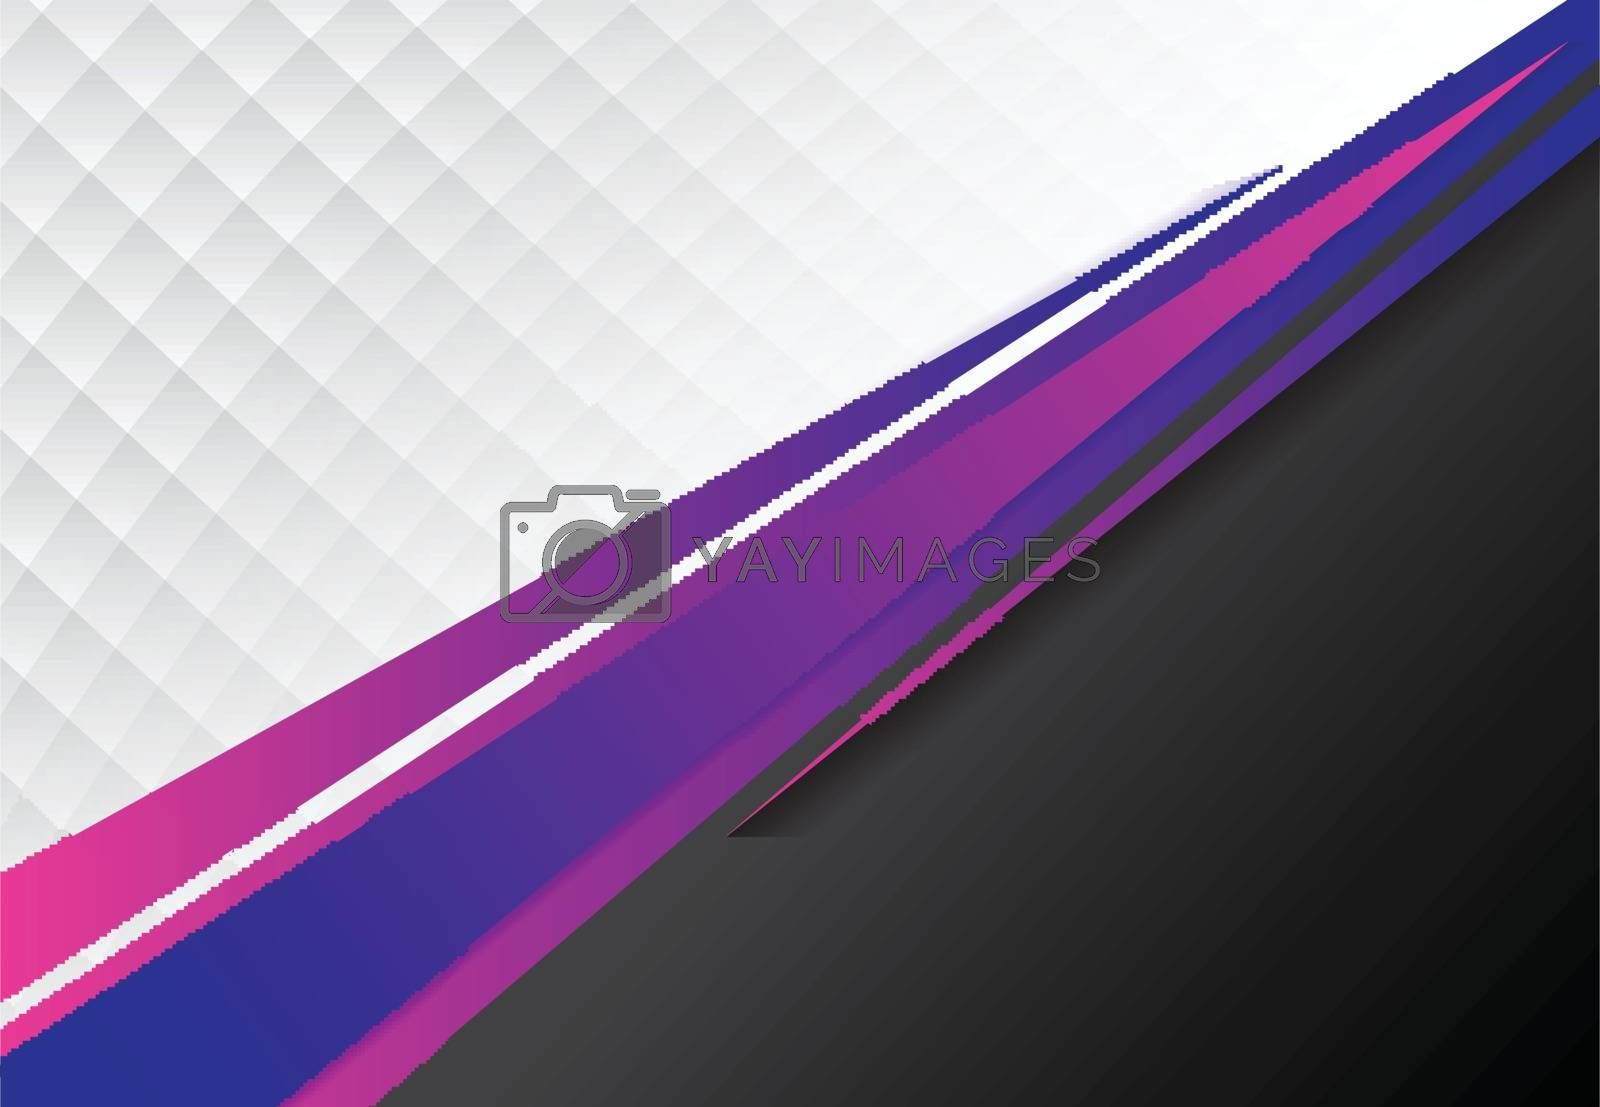 template corporate concept blue, purple and black, grey and white contrast background. Vector graphic design illustration, copy space